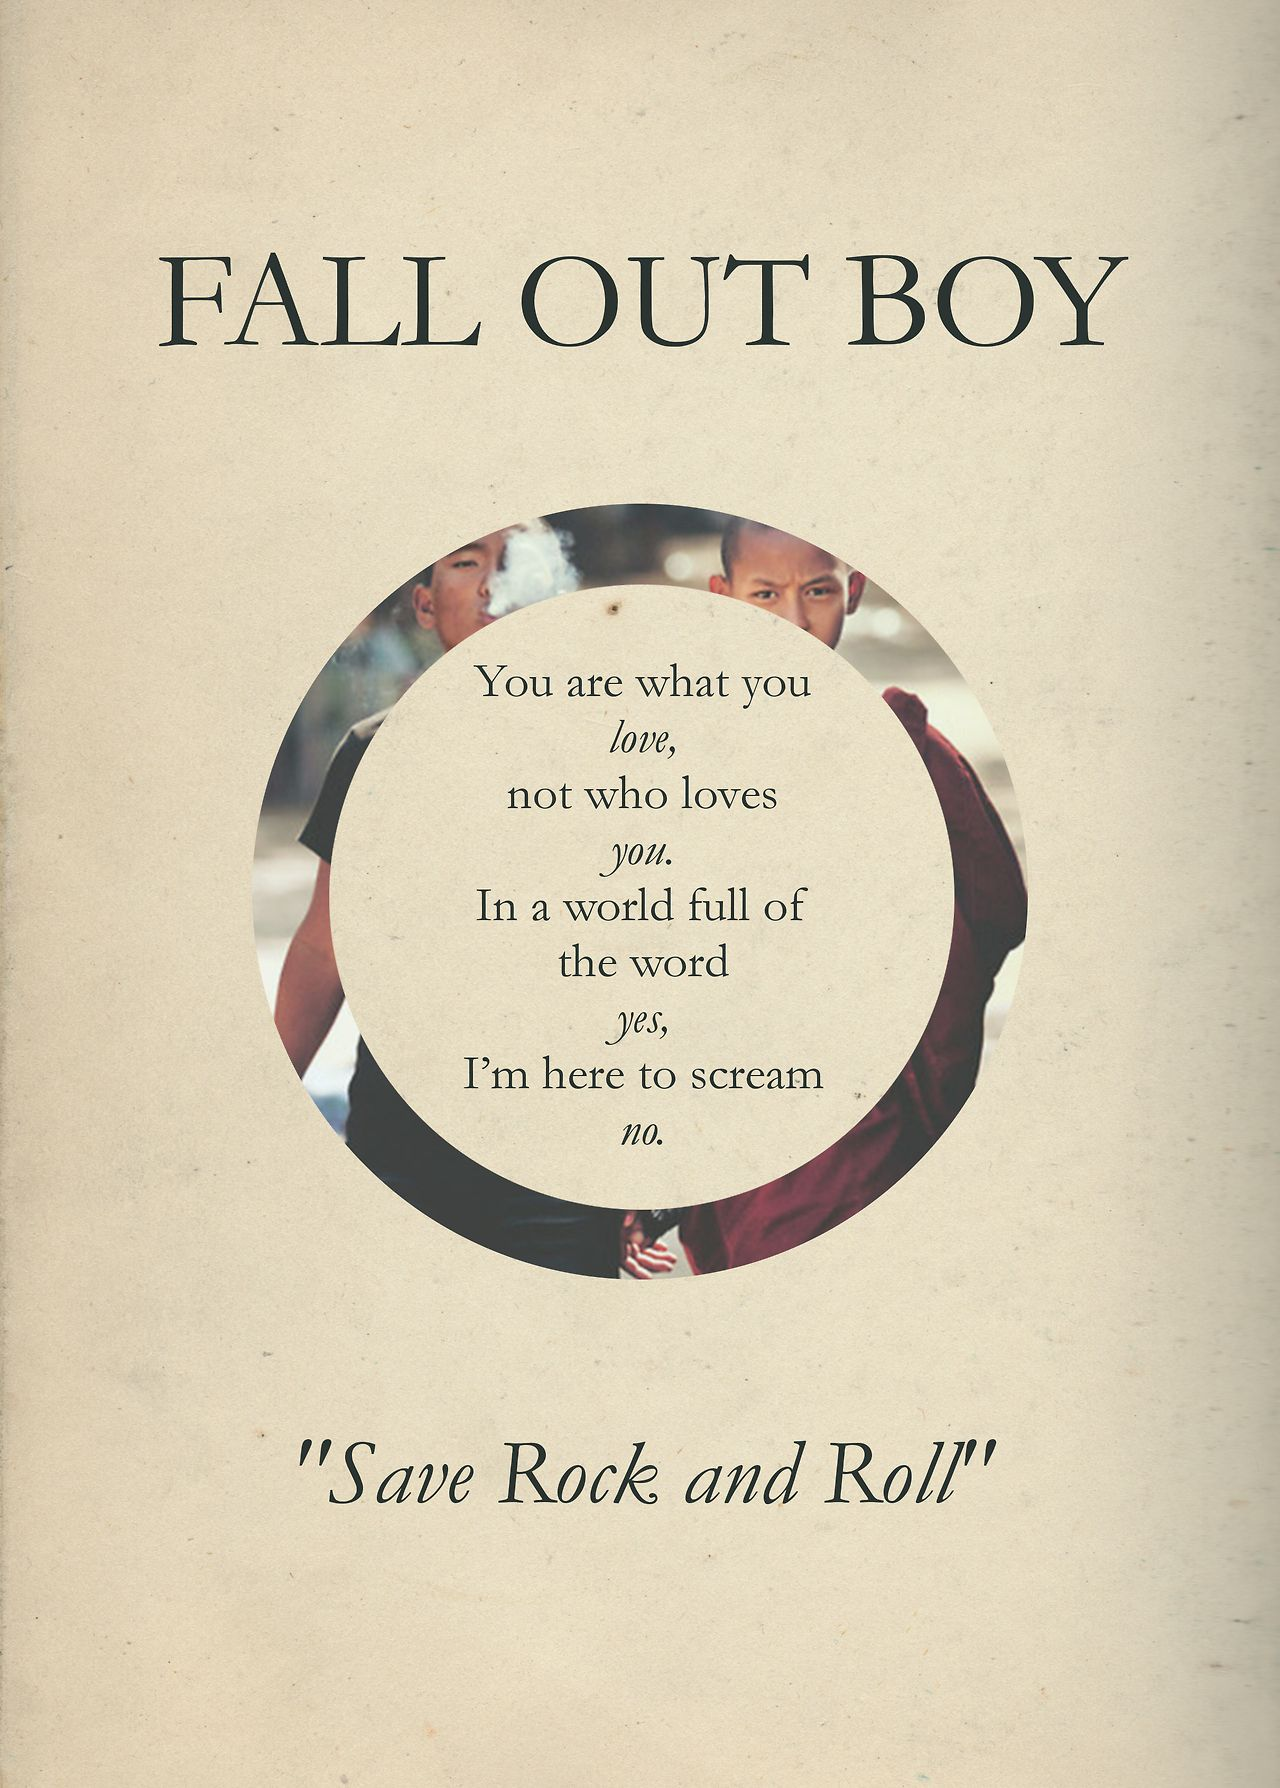 Favorite lines from this song. Fall out boy lyrics, Fall